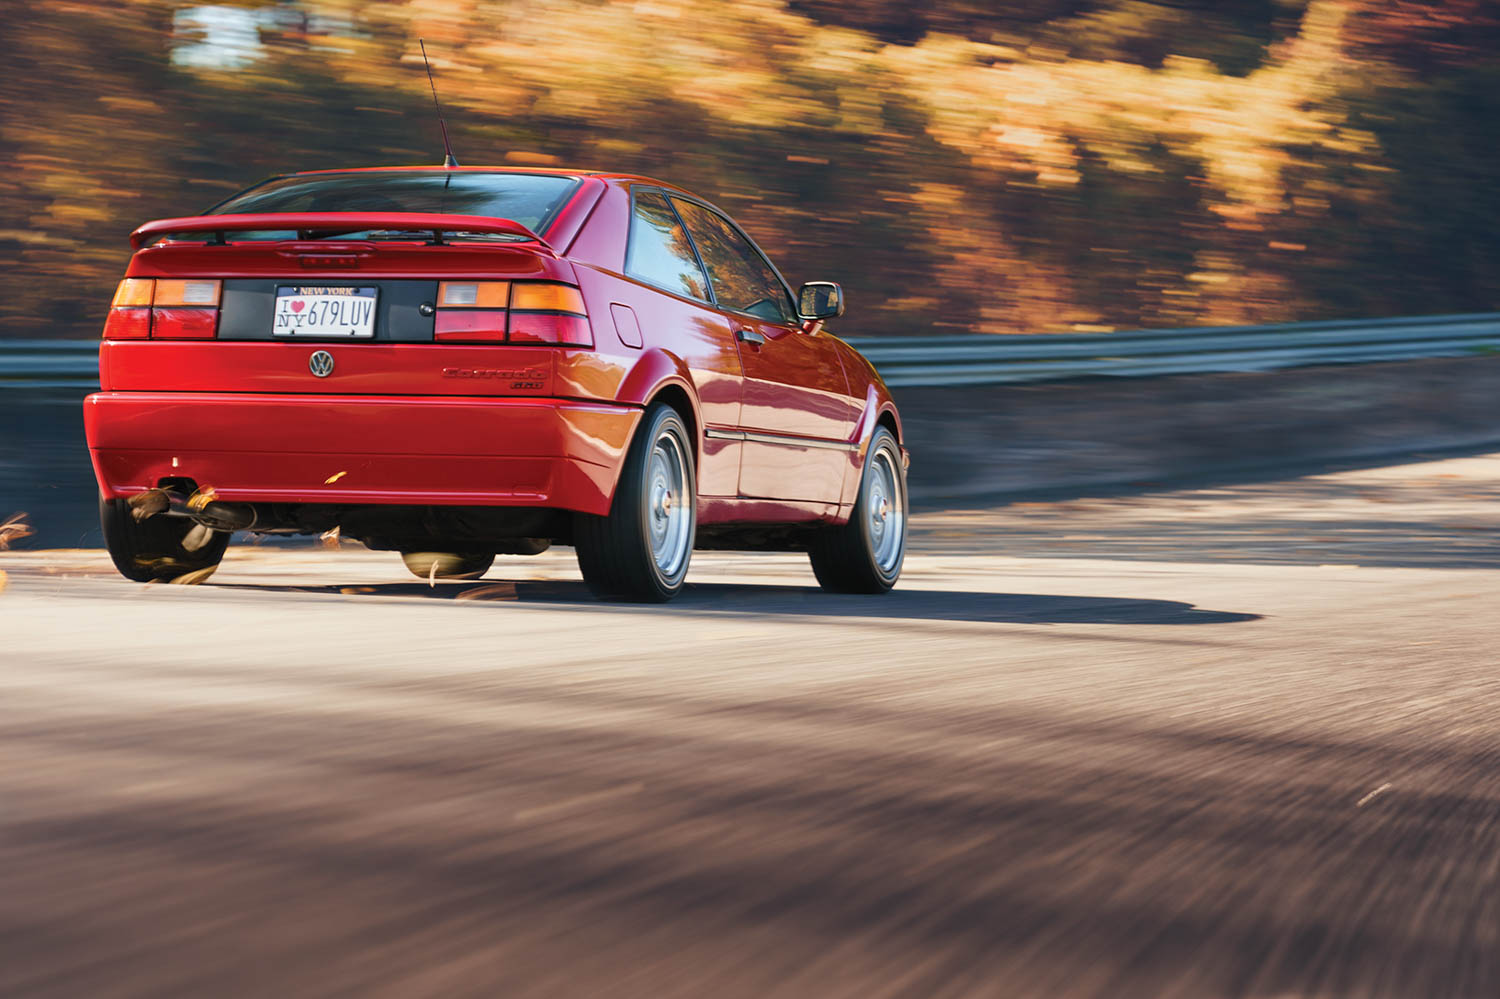 Taller and somewhat stubbier-looking than the contemporary Golf-based VW Scirocco, the Corrado had its own platform.